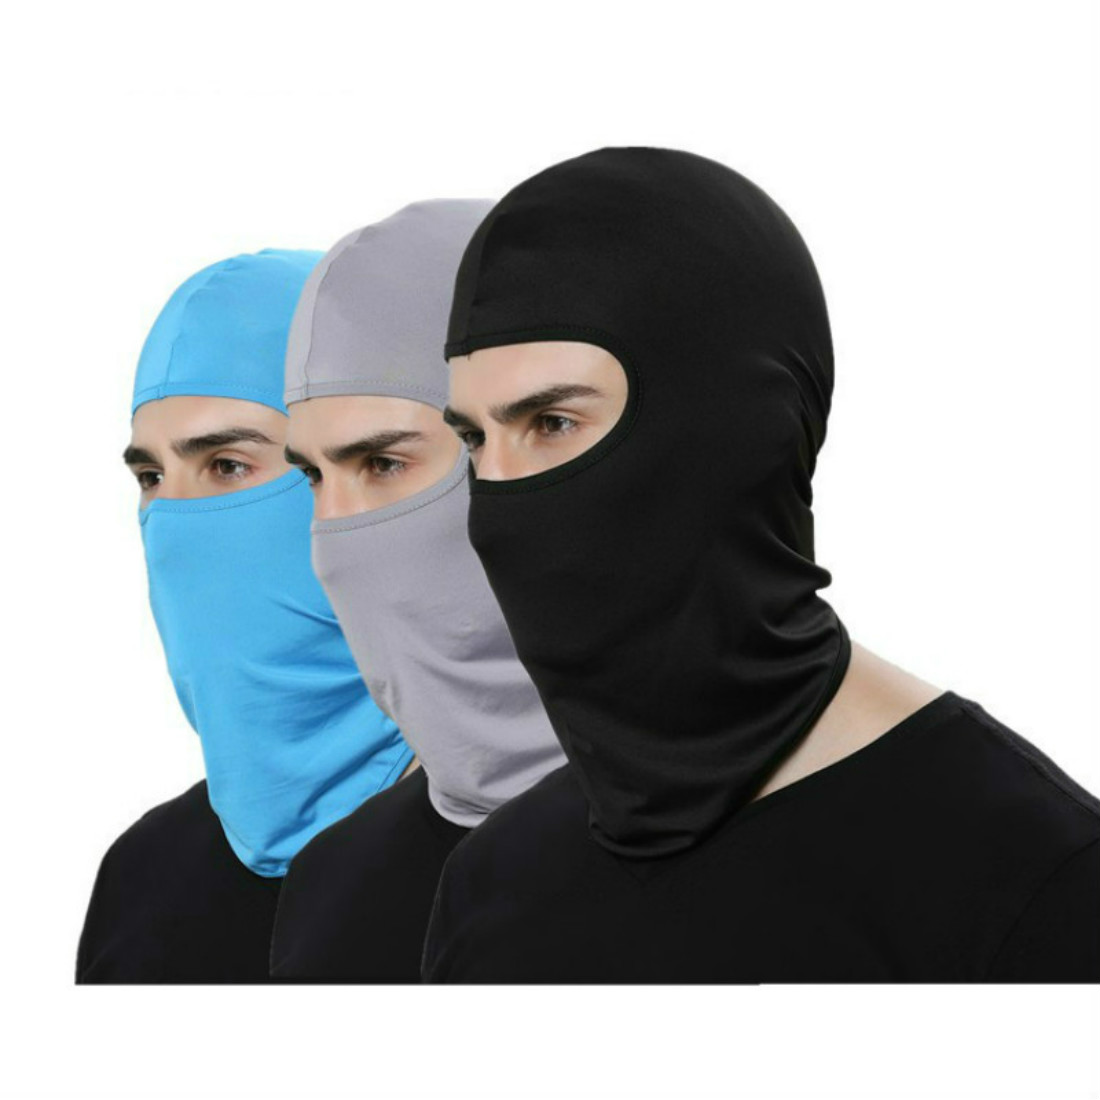 Outdoor Sports Neck Motorcycle Face Mask Winter Warm Ski Snowboard Wind Cap Police Cycling Balaclavas Face Mask сумки для детей 3d bags рюкзак божья коровка